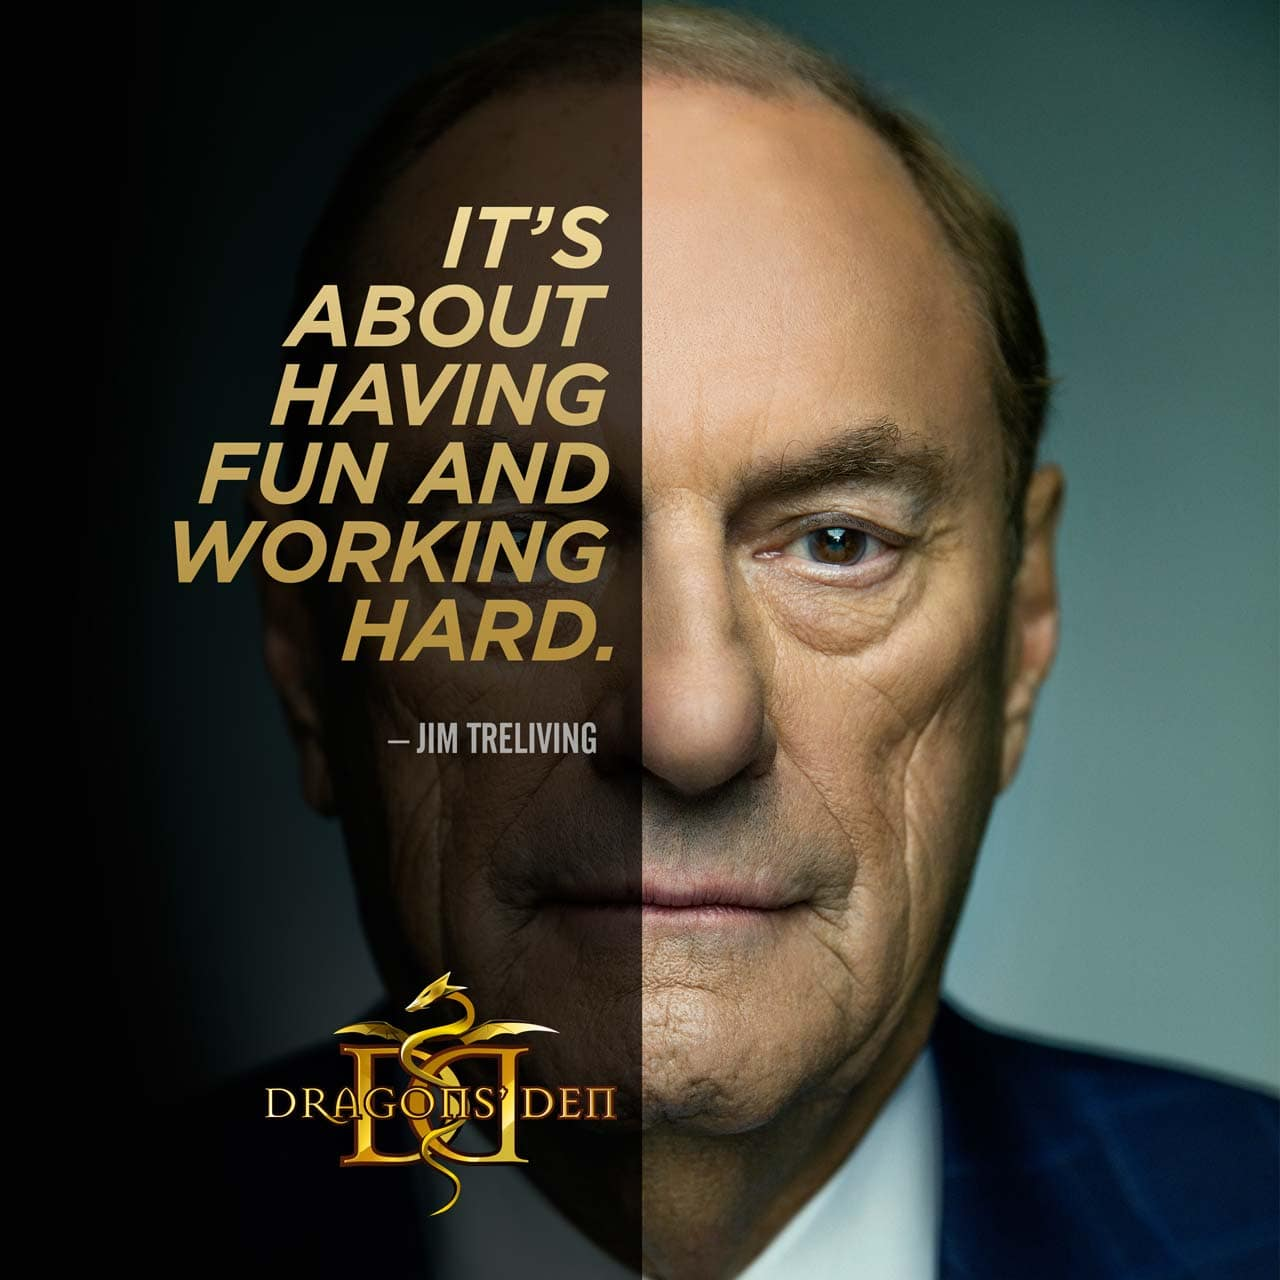 It's about having fun and working hard. Said by Jim Treliving